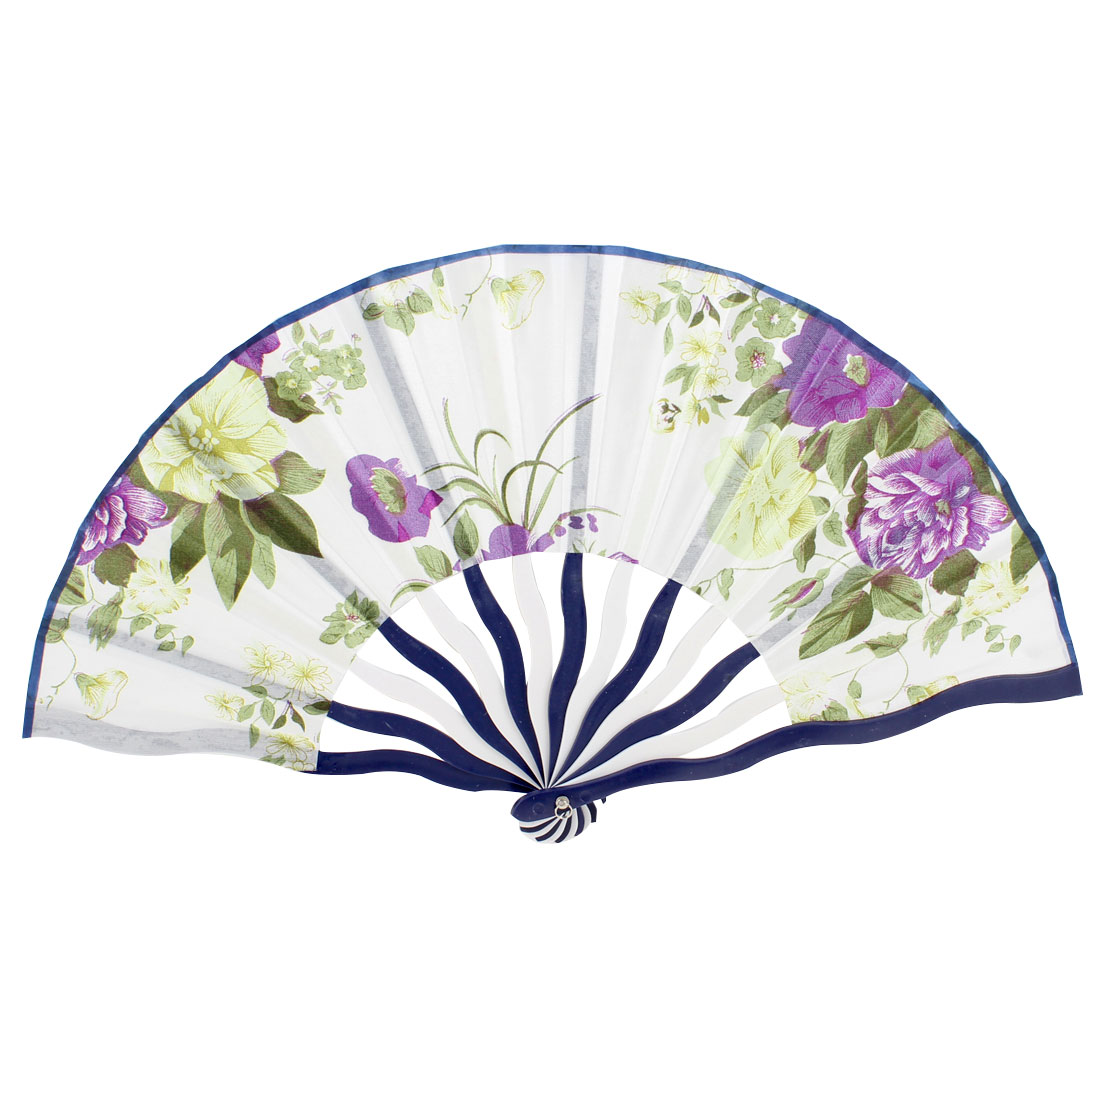 Oriental Small White Fabric Plastic Frame Folding Dancing Fan Art